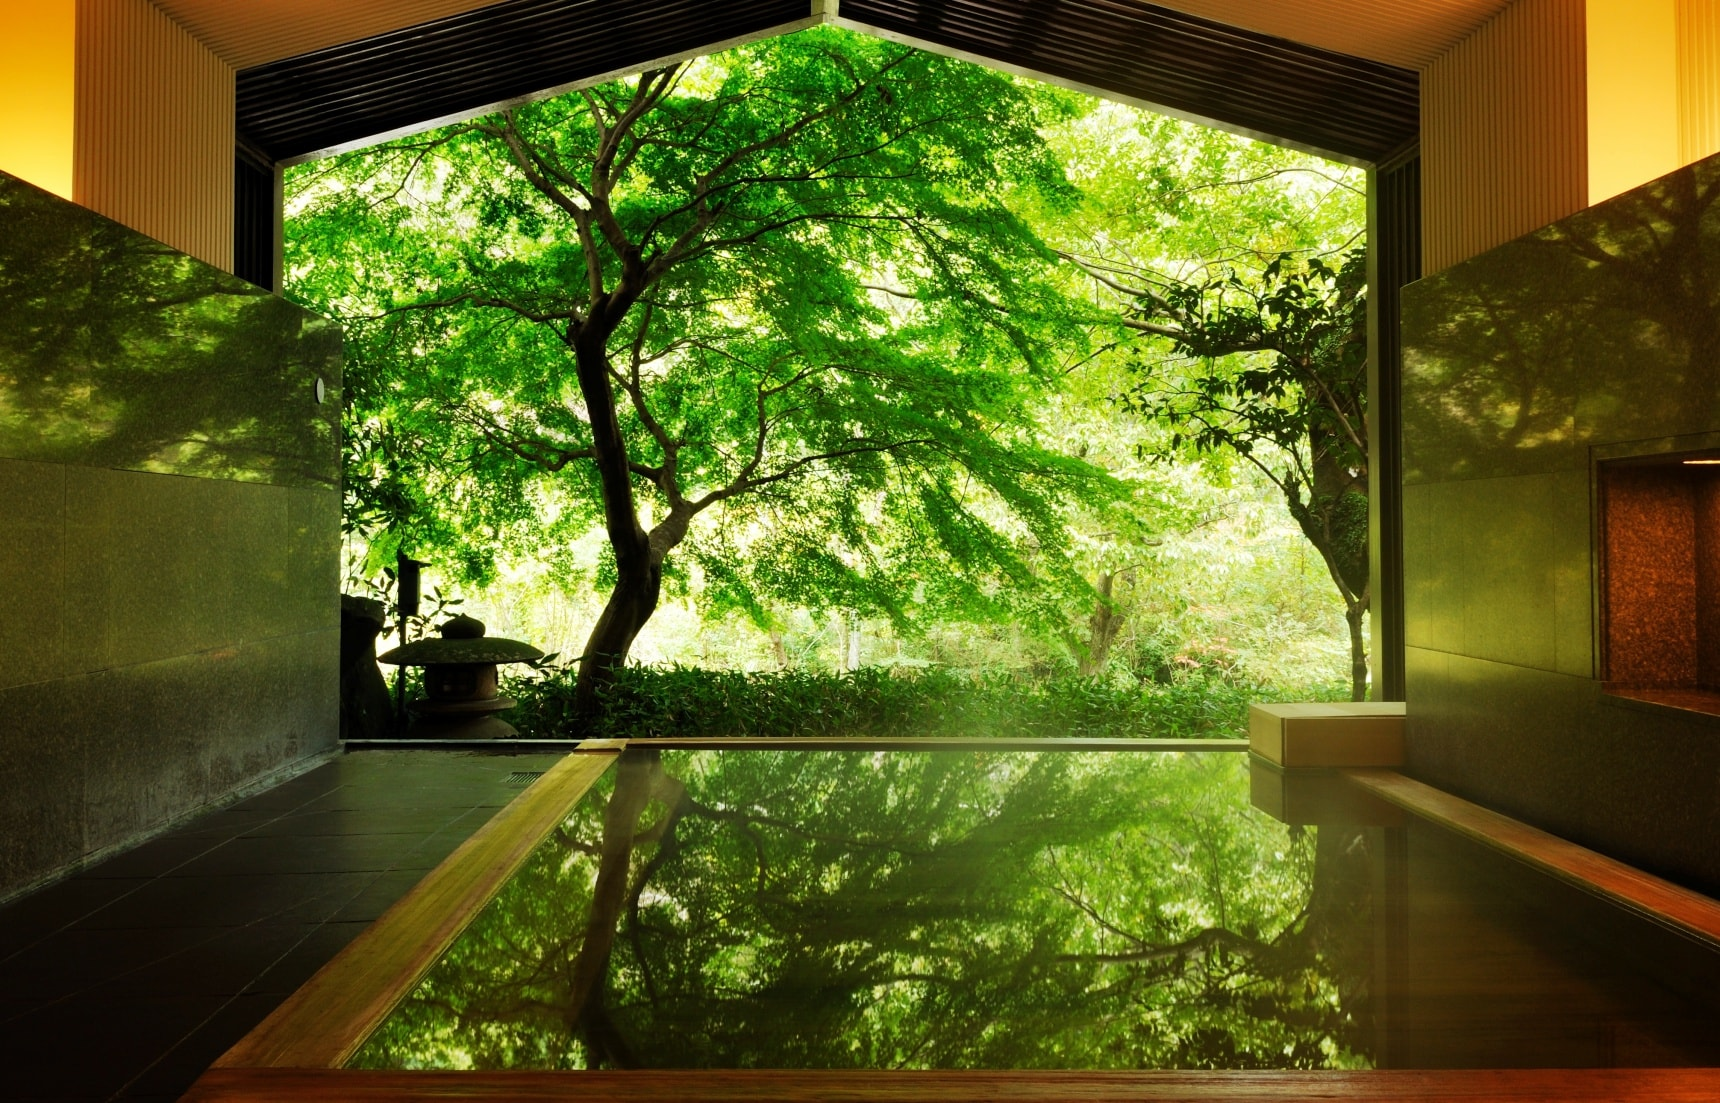 Top 5 Luxurious KAI Ryokan Inns Across Japan